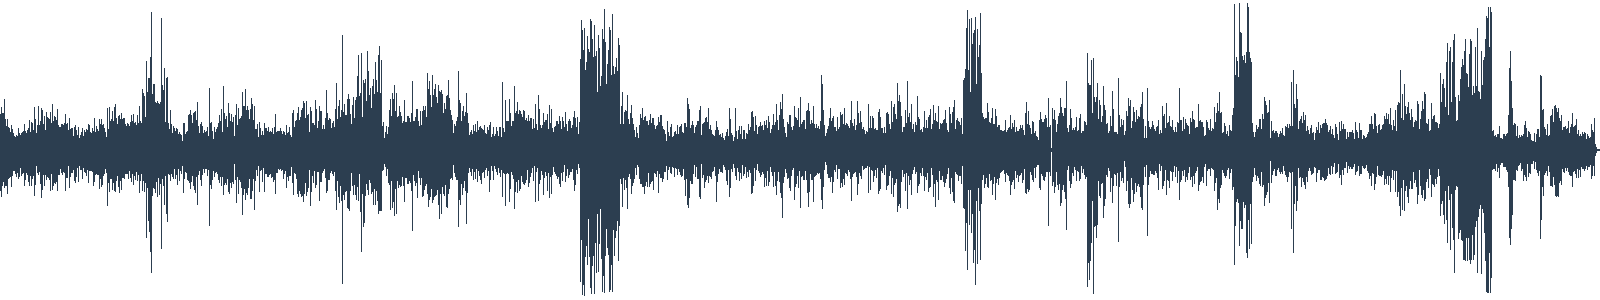 #9b Audio Agathy Christie, 2. část waveform